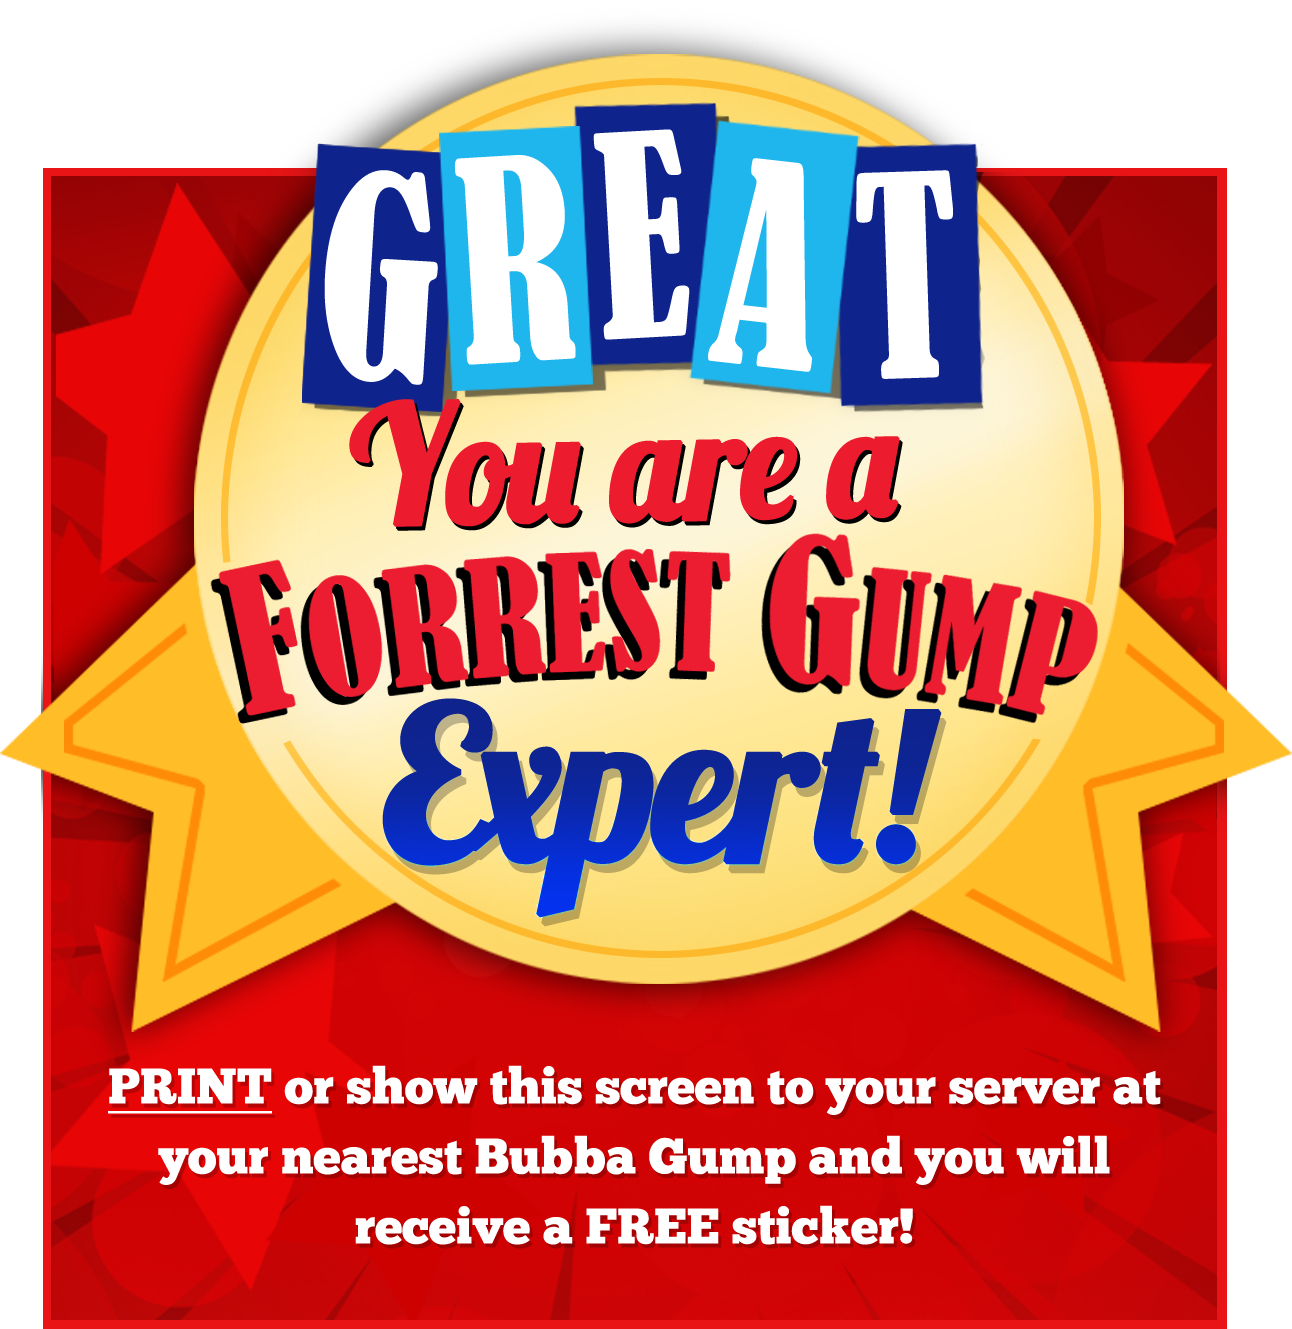 Great! You are a Forrest Gump Expert! - PRINT or show this screen to your server at Bubba Gump Hong Kong and you will receive a free postcard!